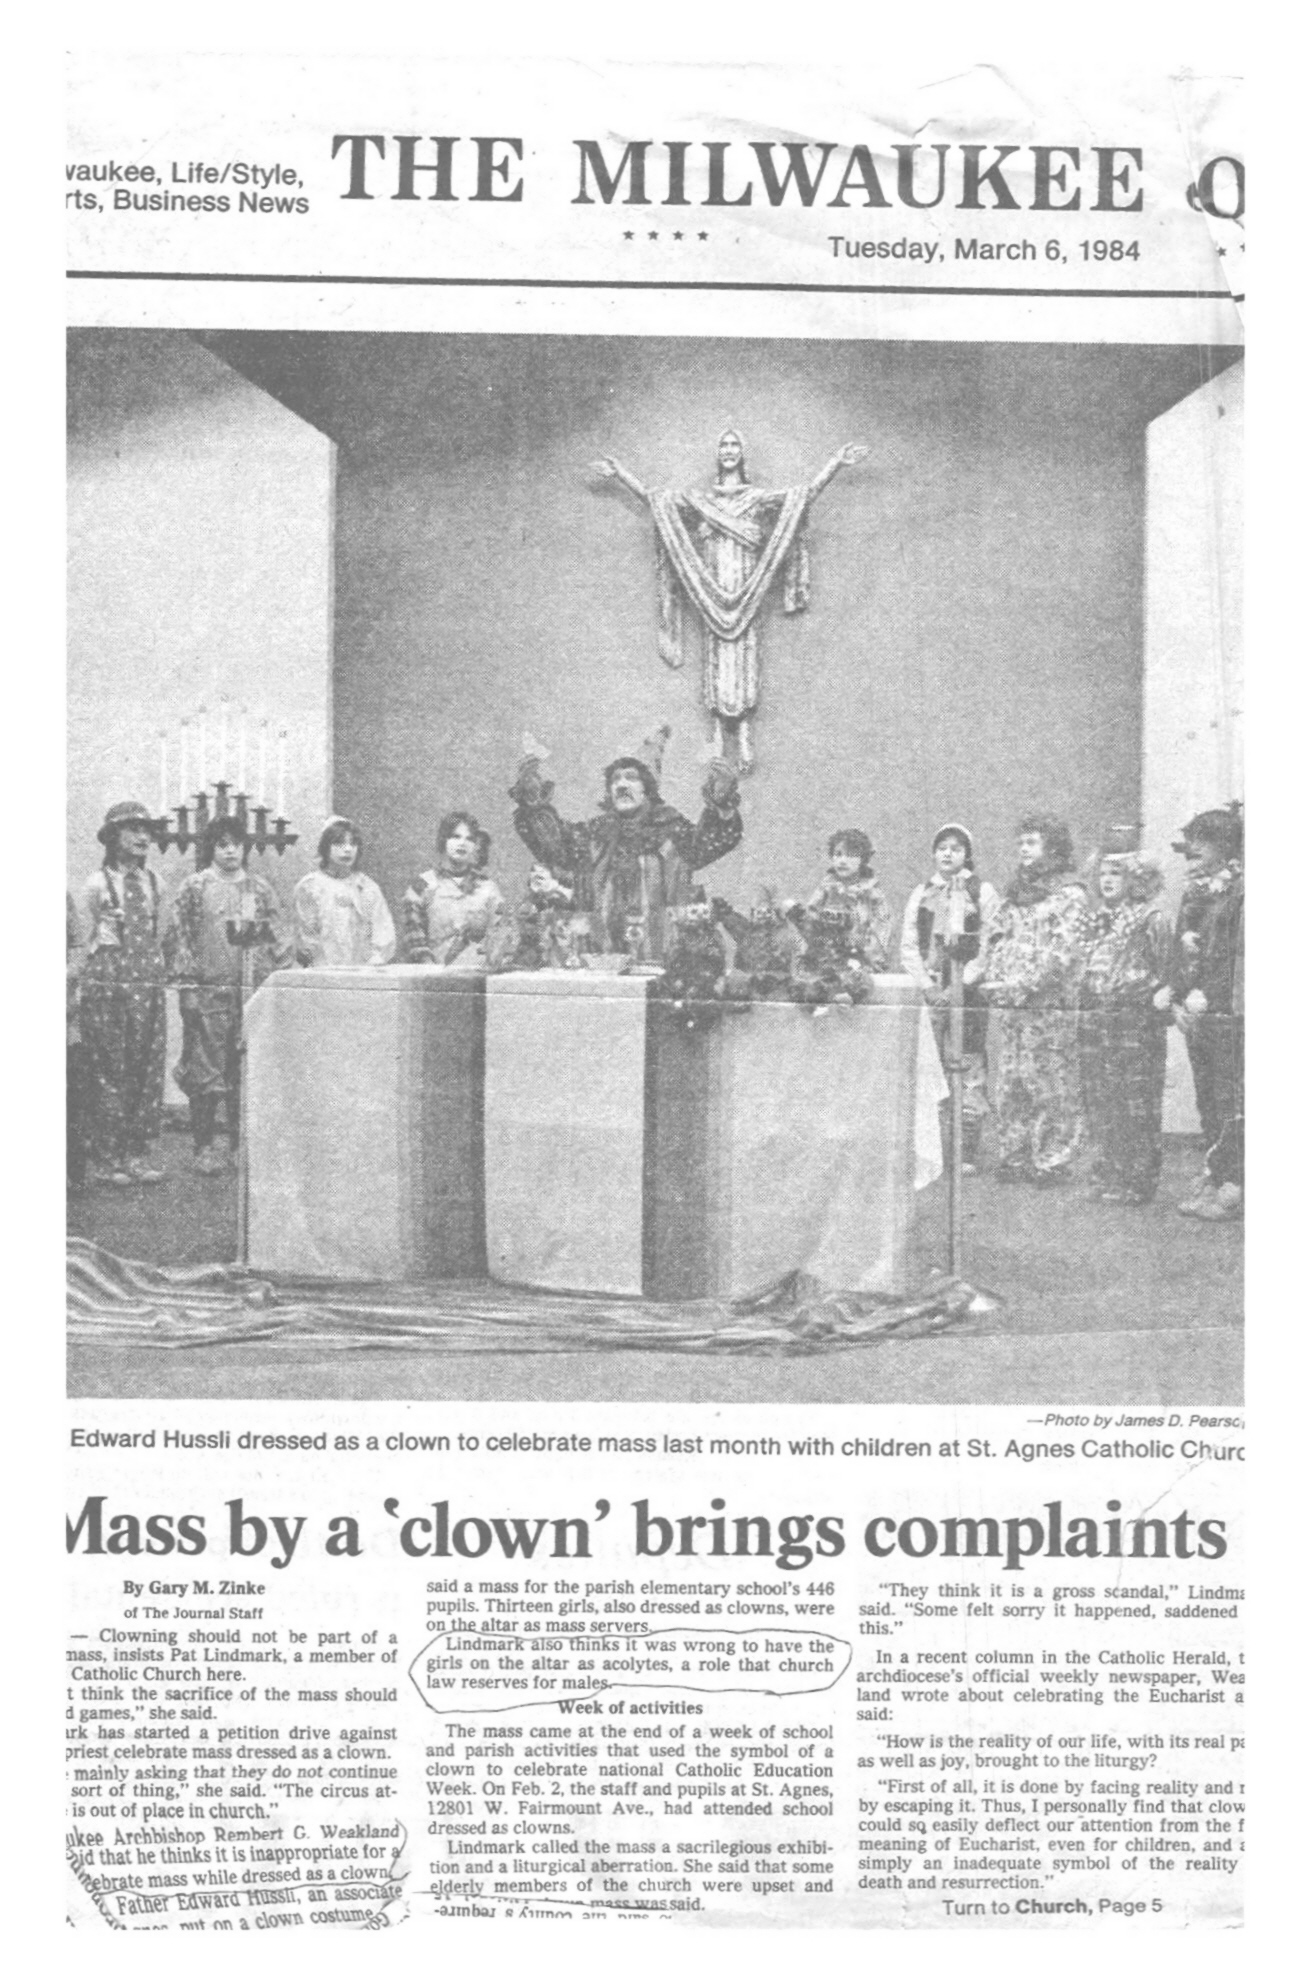 Mass by a 'clown' brings complaints, by Gary M. Zinke, Milwaukee Journal, March 6, 1984